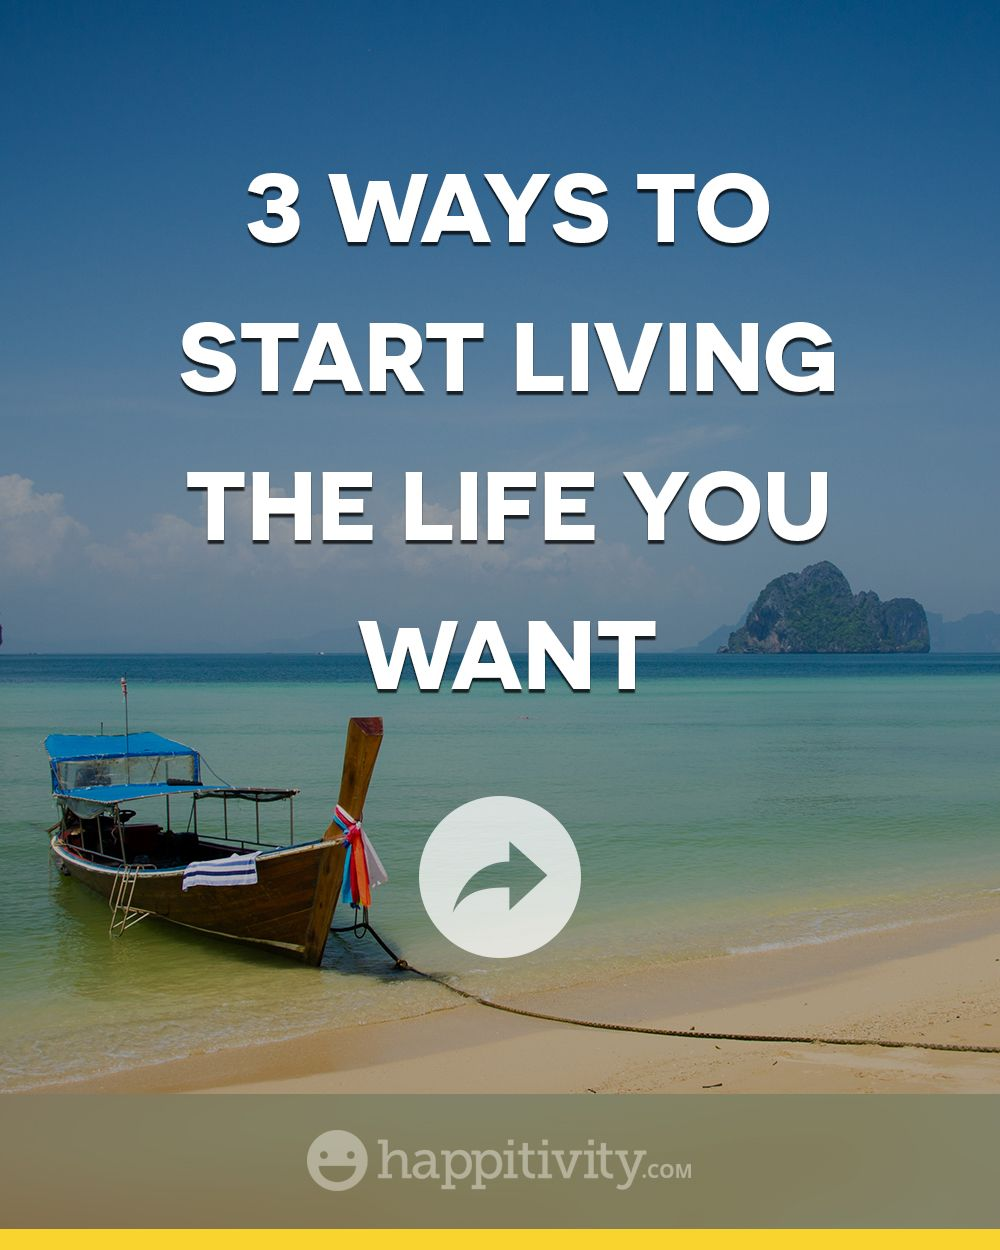 3 Ways to Start Living the Life You Want | Inspirational ...